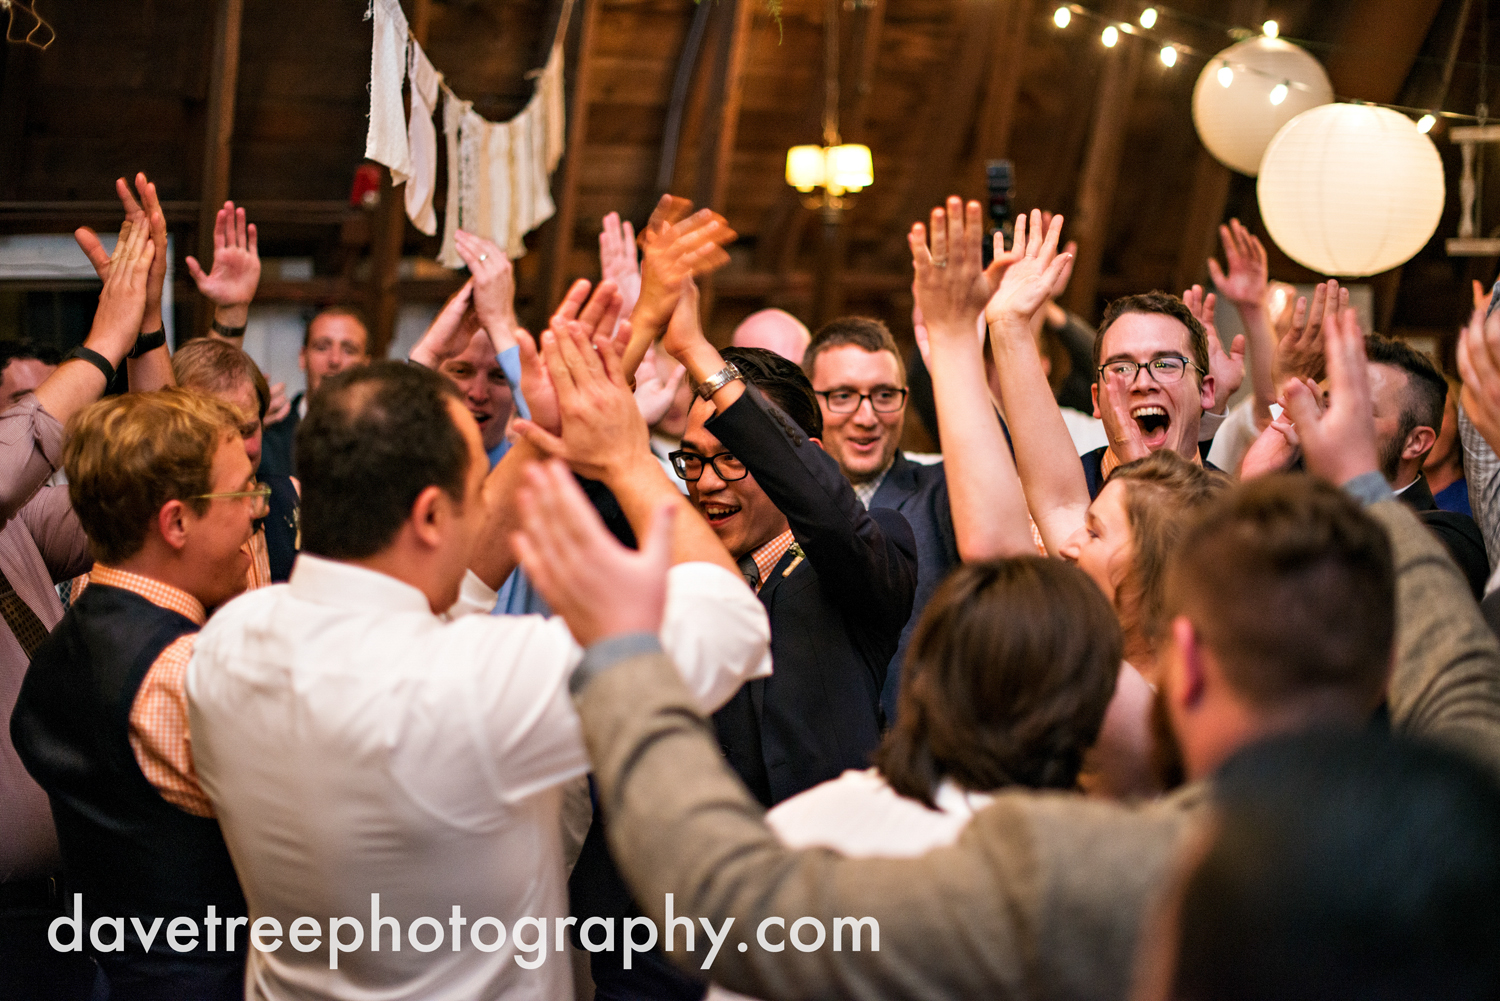 benton_harbor_wedding_photographer_blue_dress_barn_51.jpg